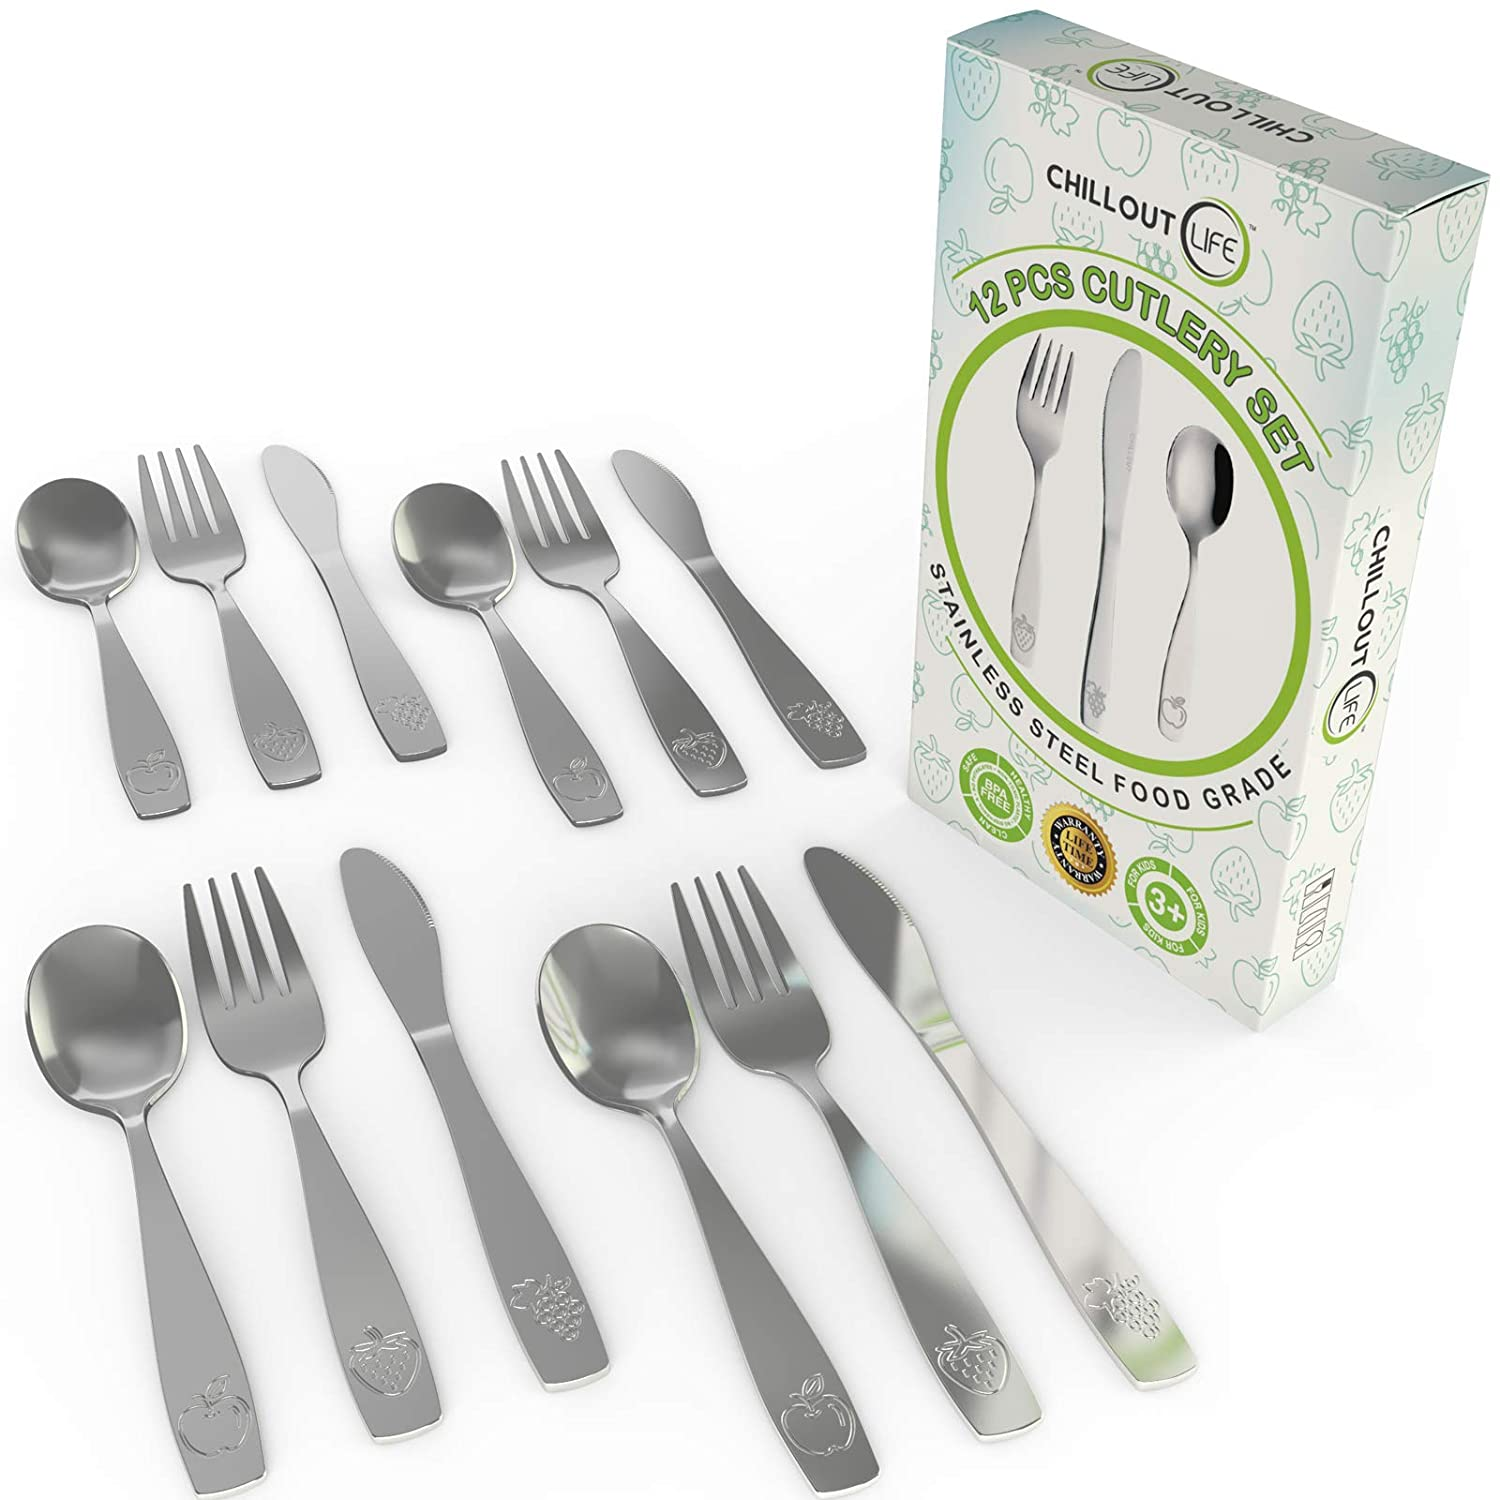 Stainless Steel Kids' Silverware Set